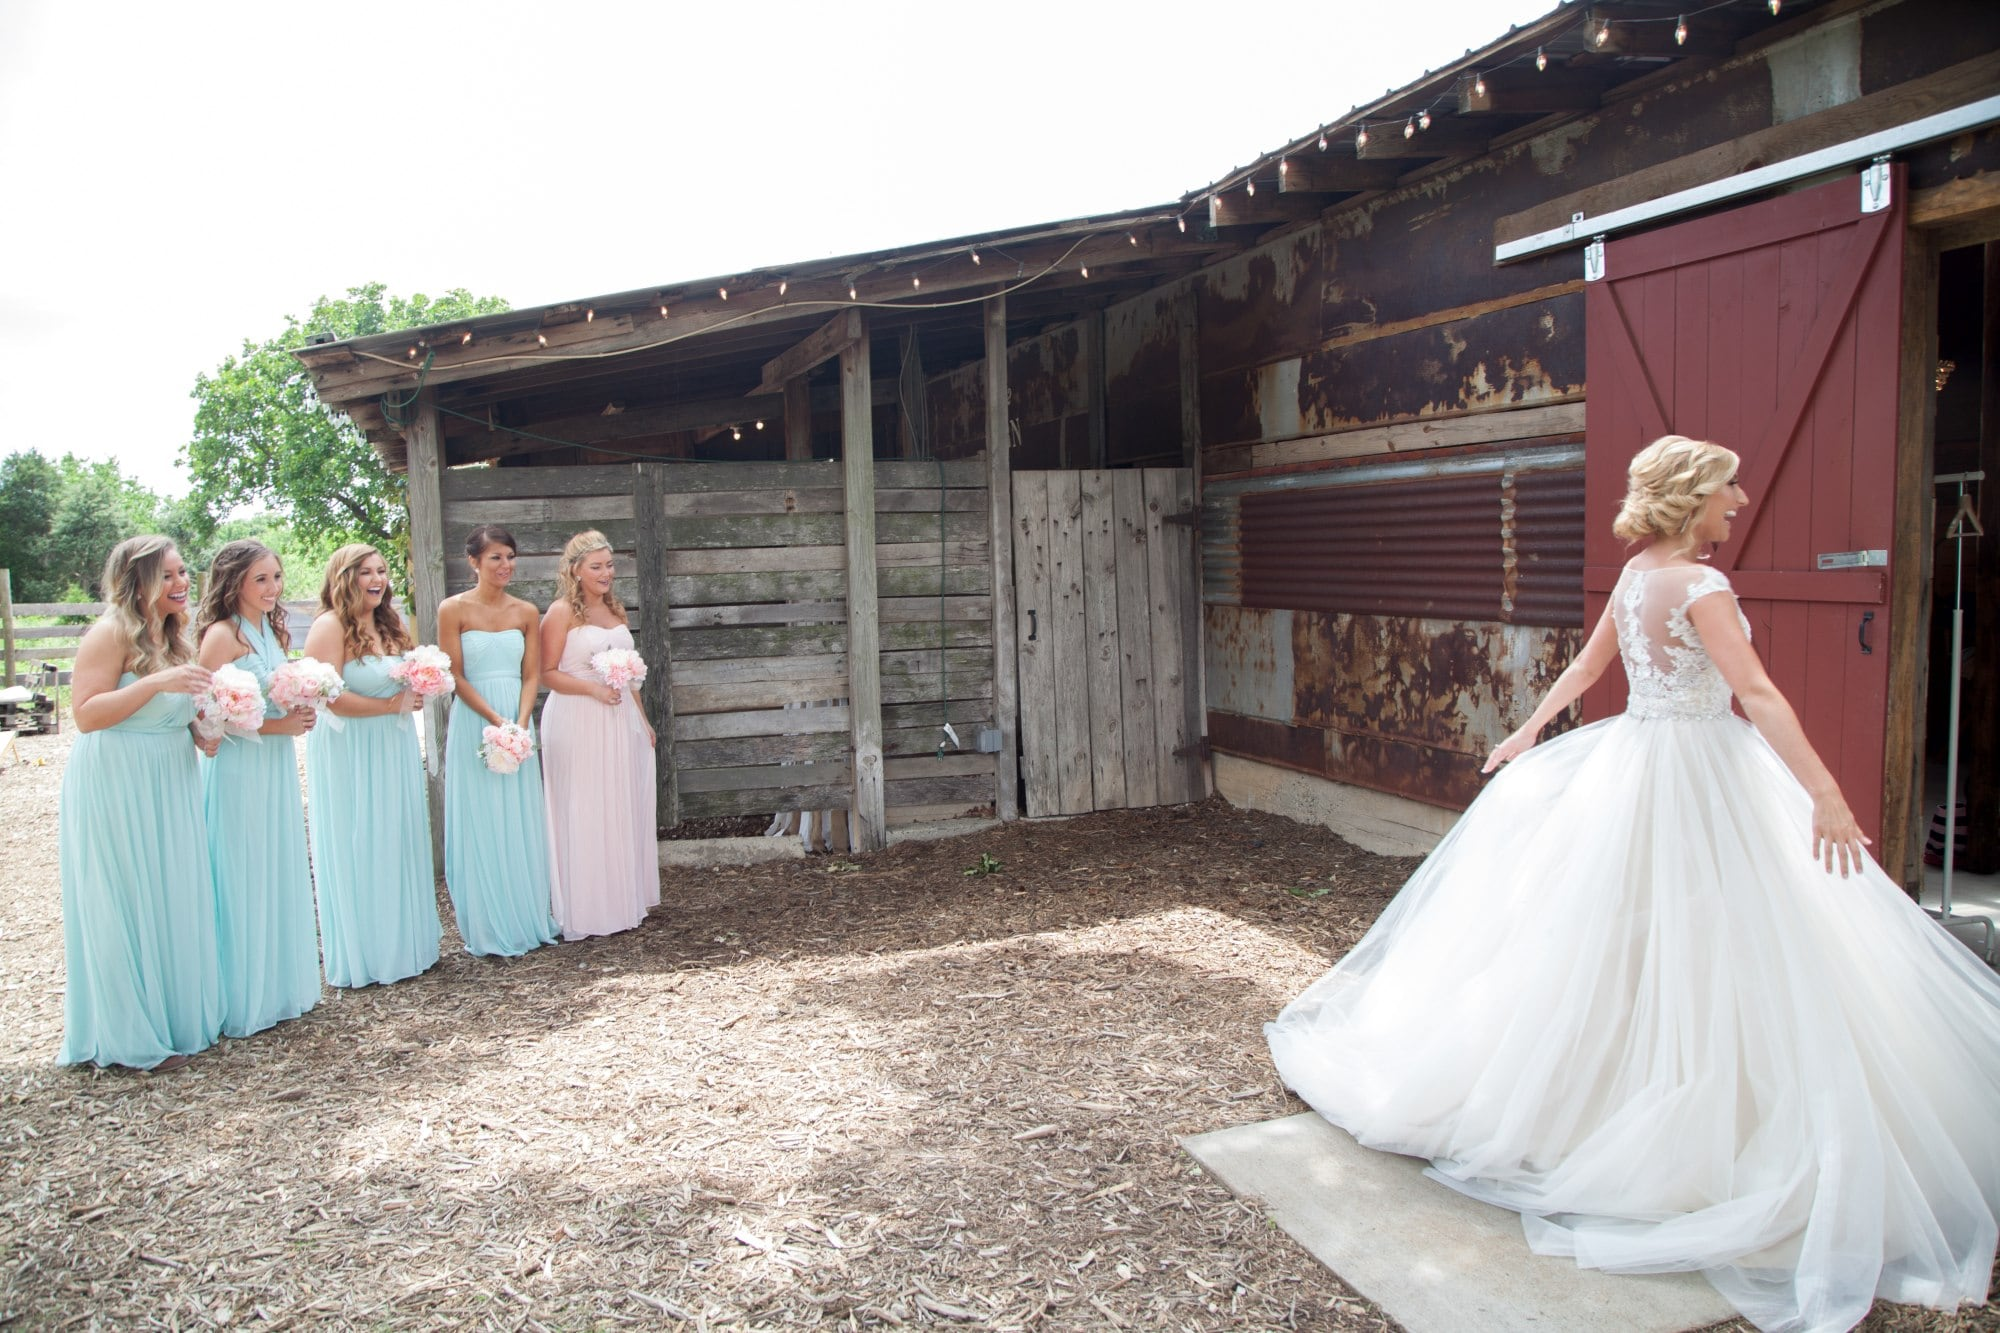 woman in white wedding gown standing beside girl in white dress